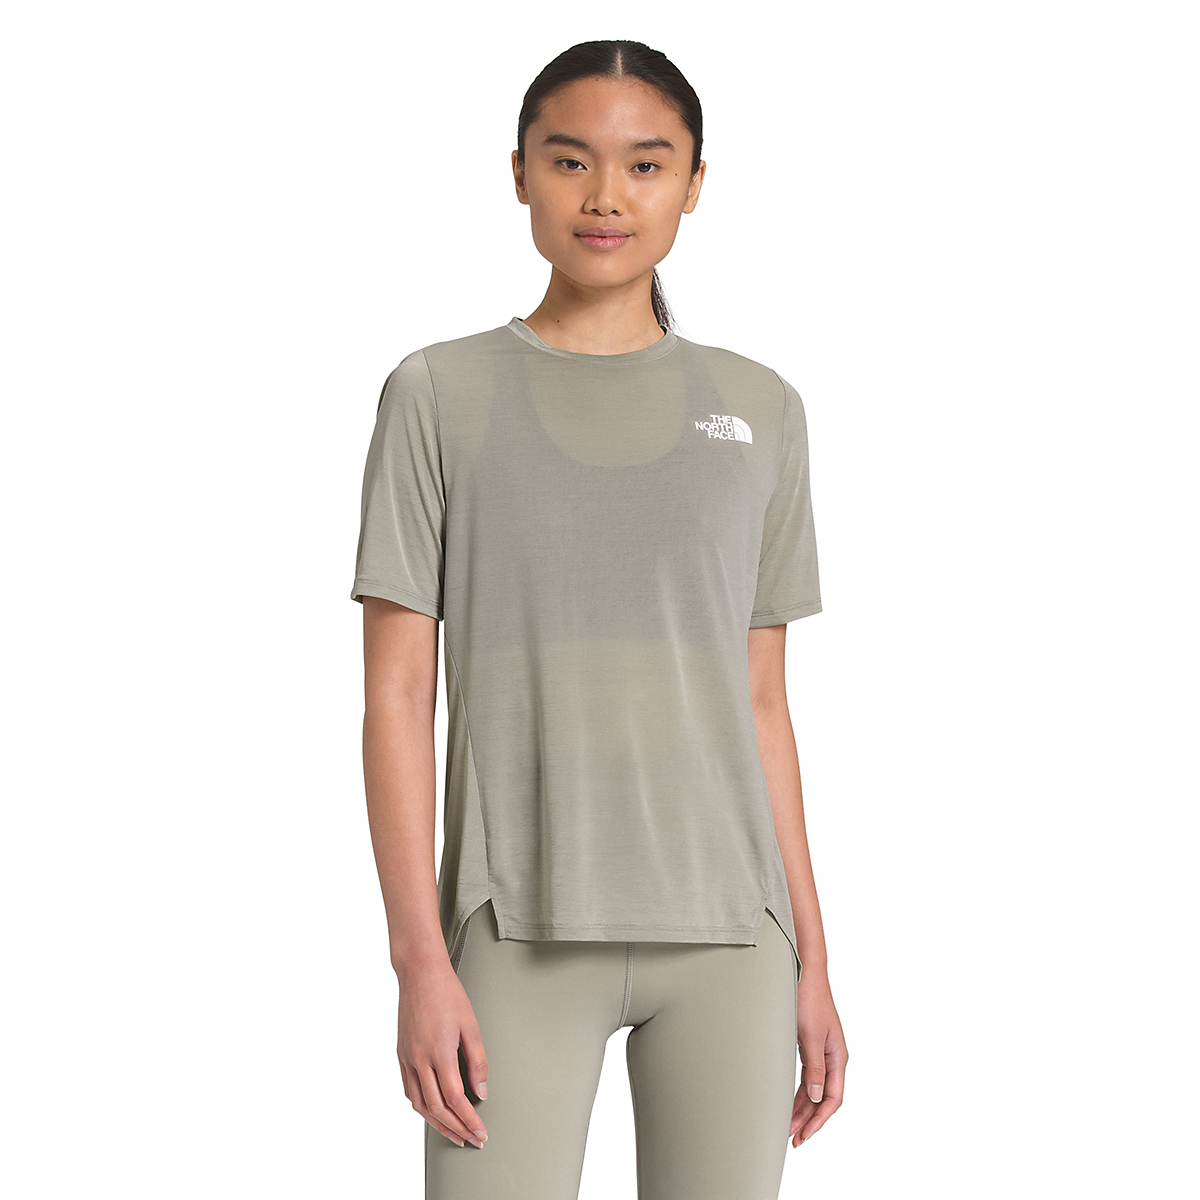 Women's The North Face Up With The Sun Short Sleeve Shirt - Color: Mineral Grey - Size: XS, Mineral Grey, large, image 1